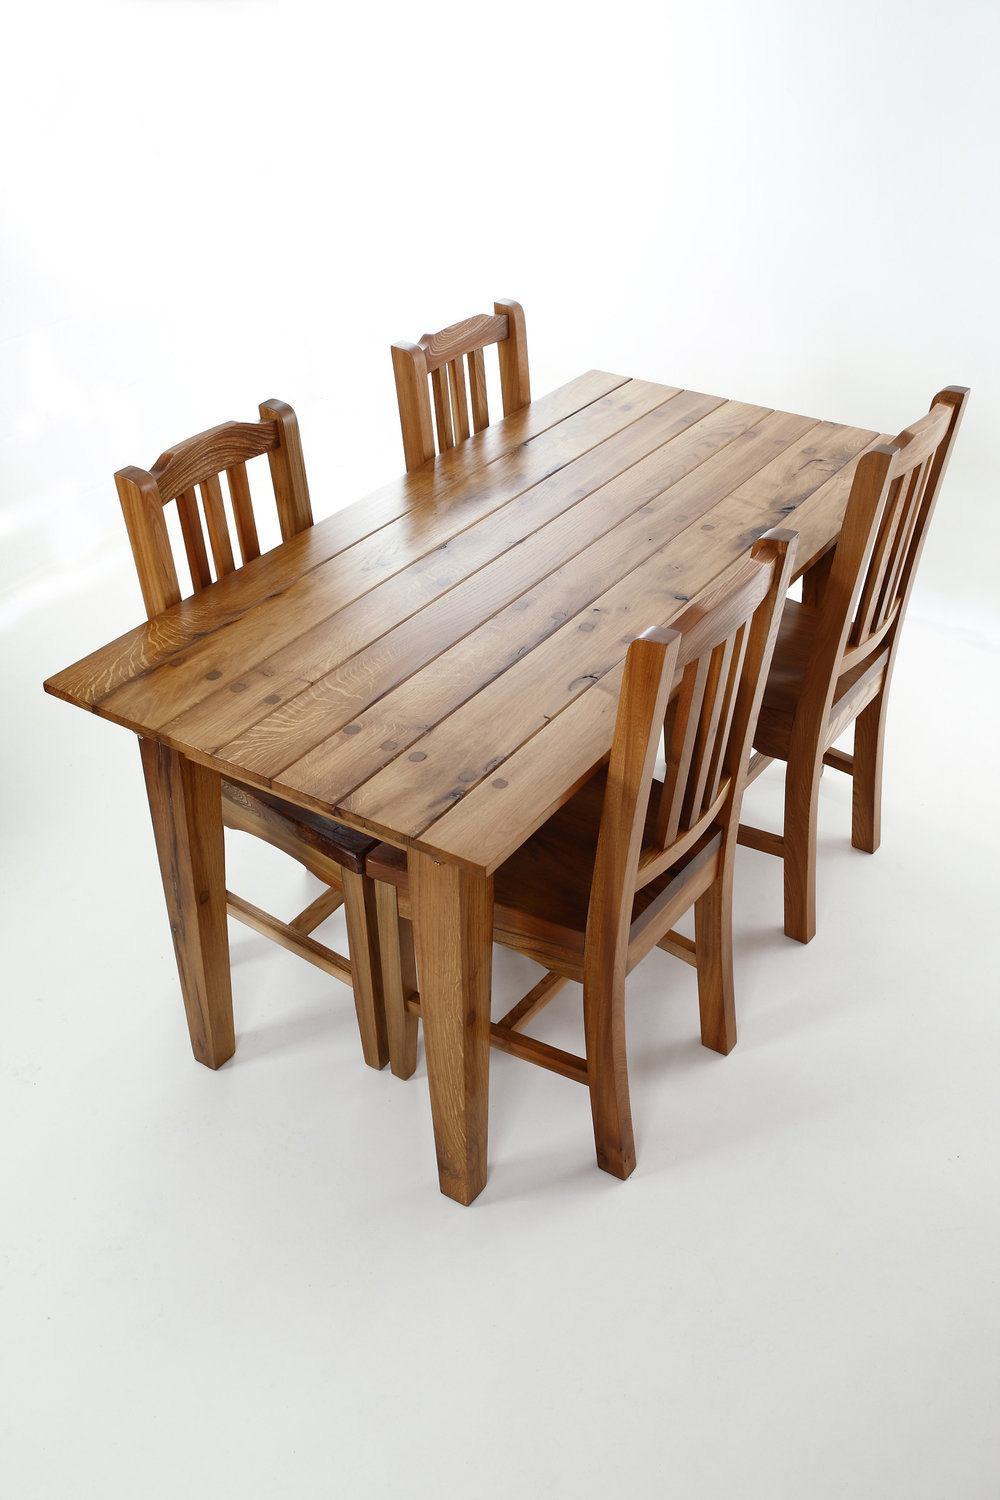 Reclaimed oak and elm dining set.